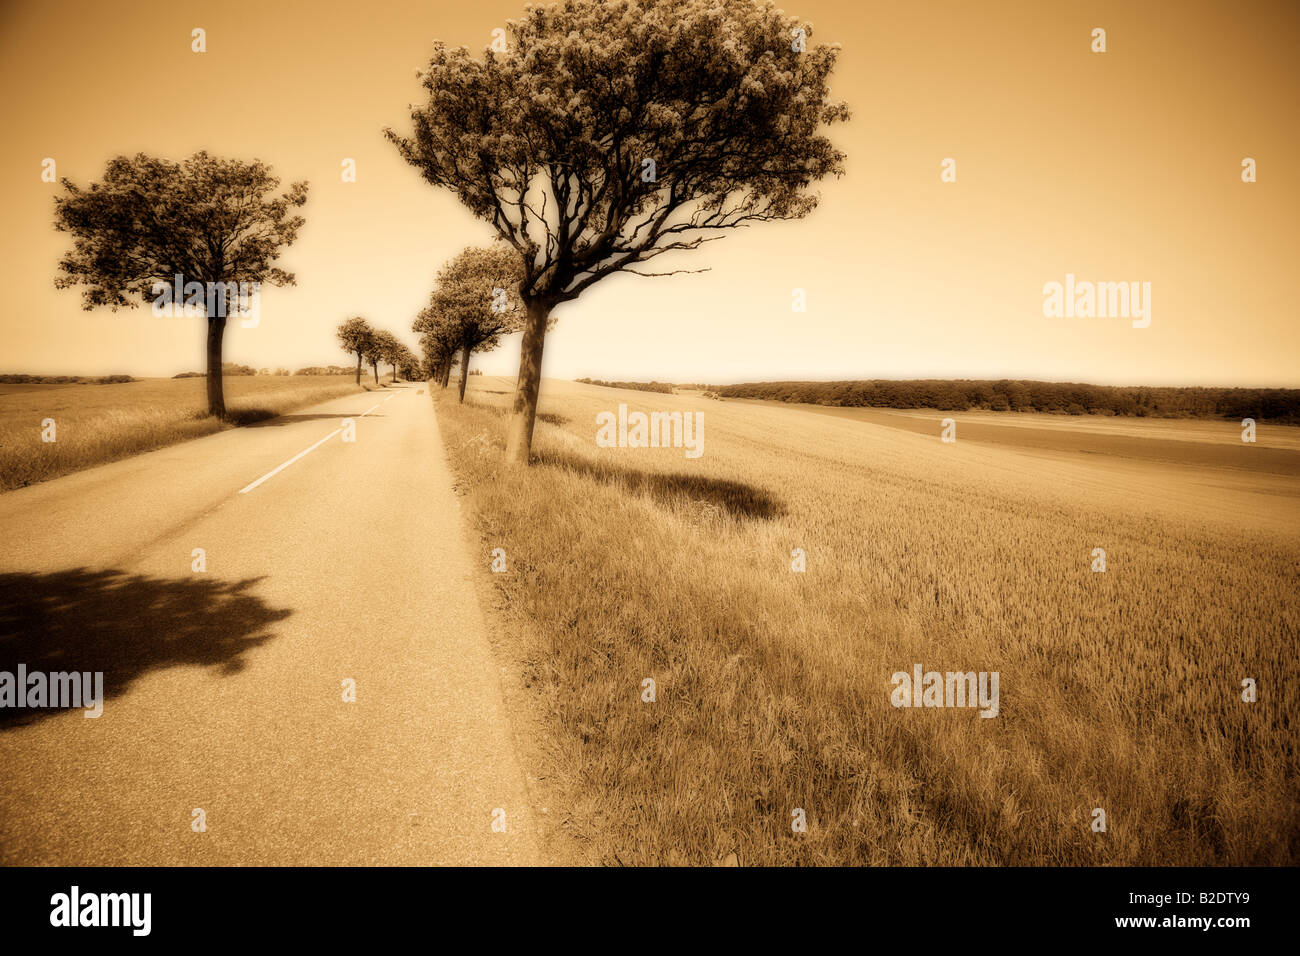 Tree Lined Road with Field monochrome Orton: A straight road with a white center line and lined with trees in spring - Stock Image